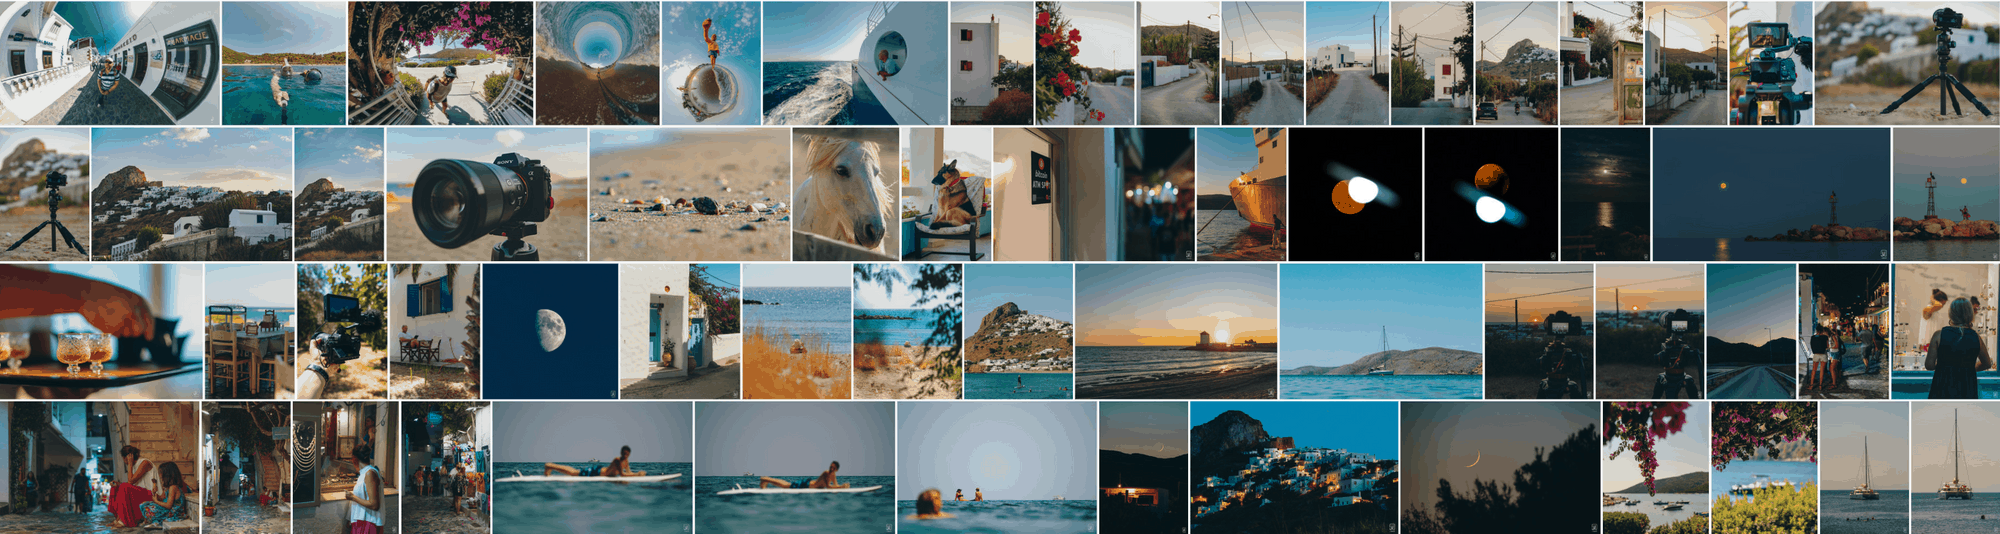 My photo album of Skyros Island